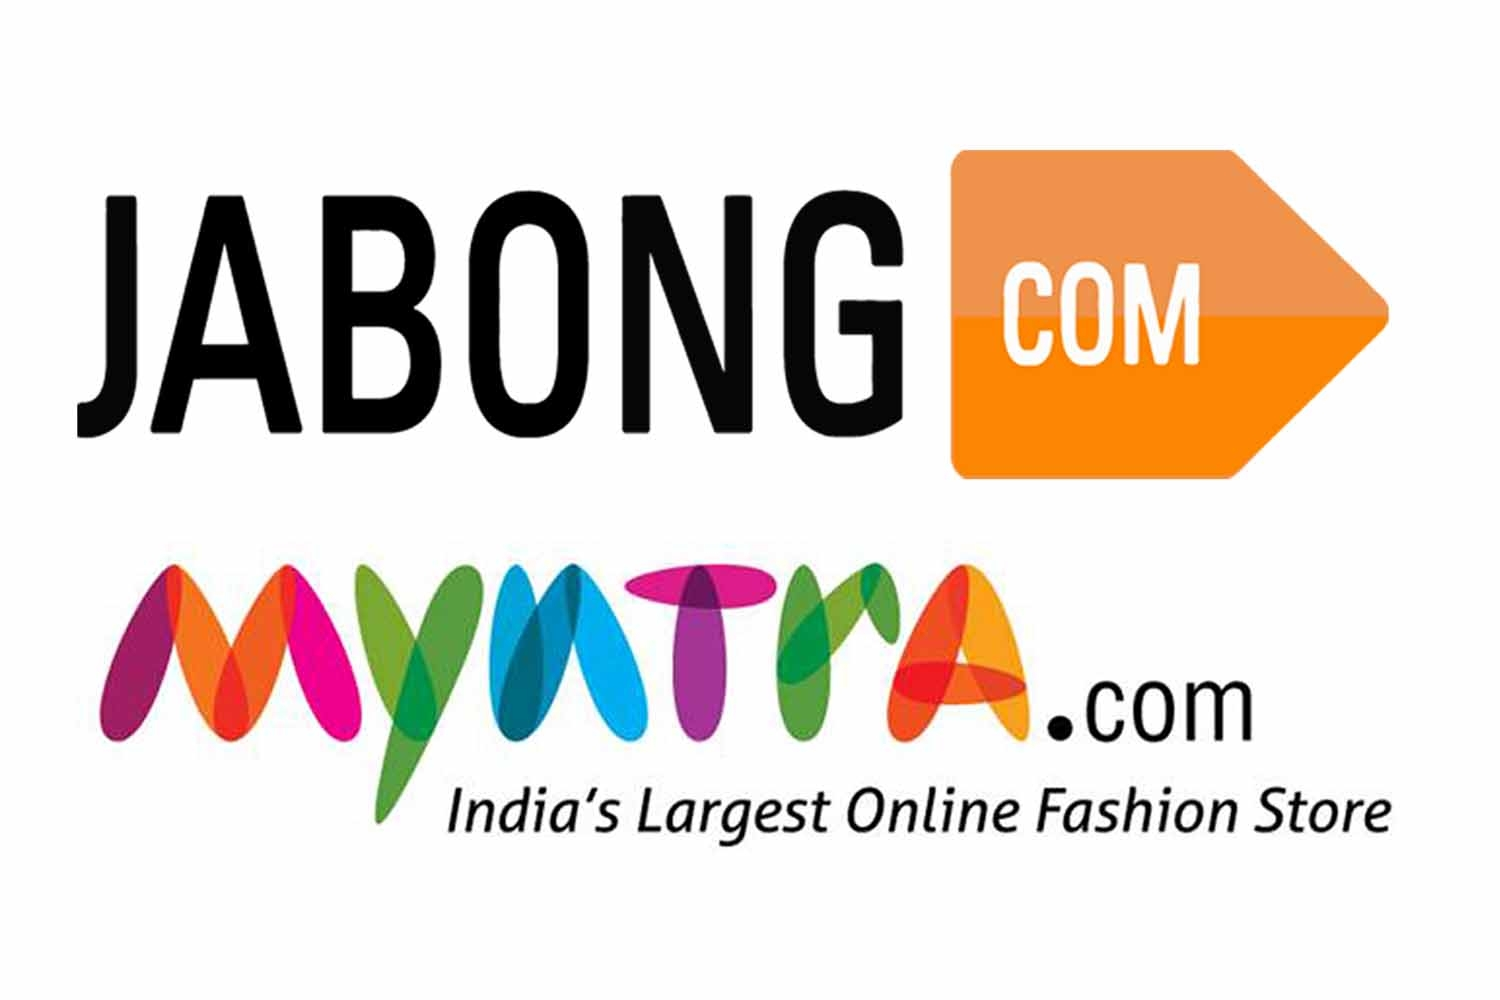 Myntra wins the tug-of-war, acquires Jabong